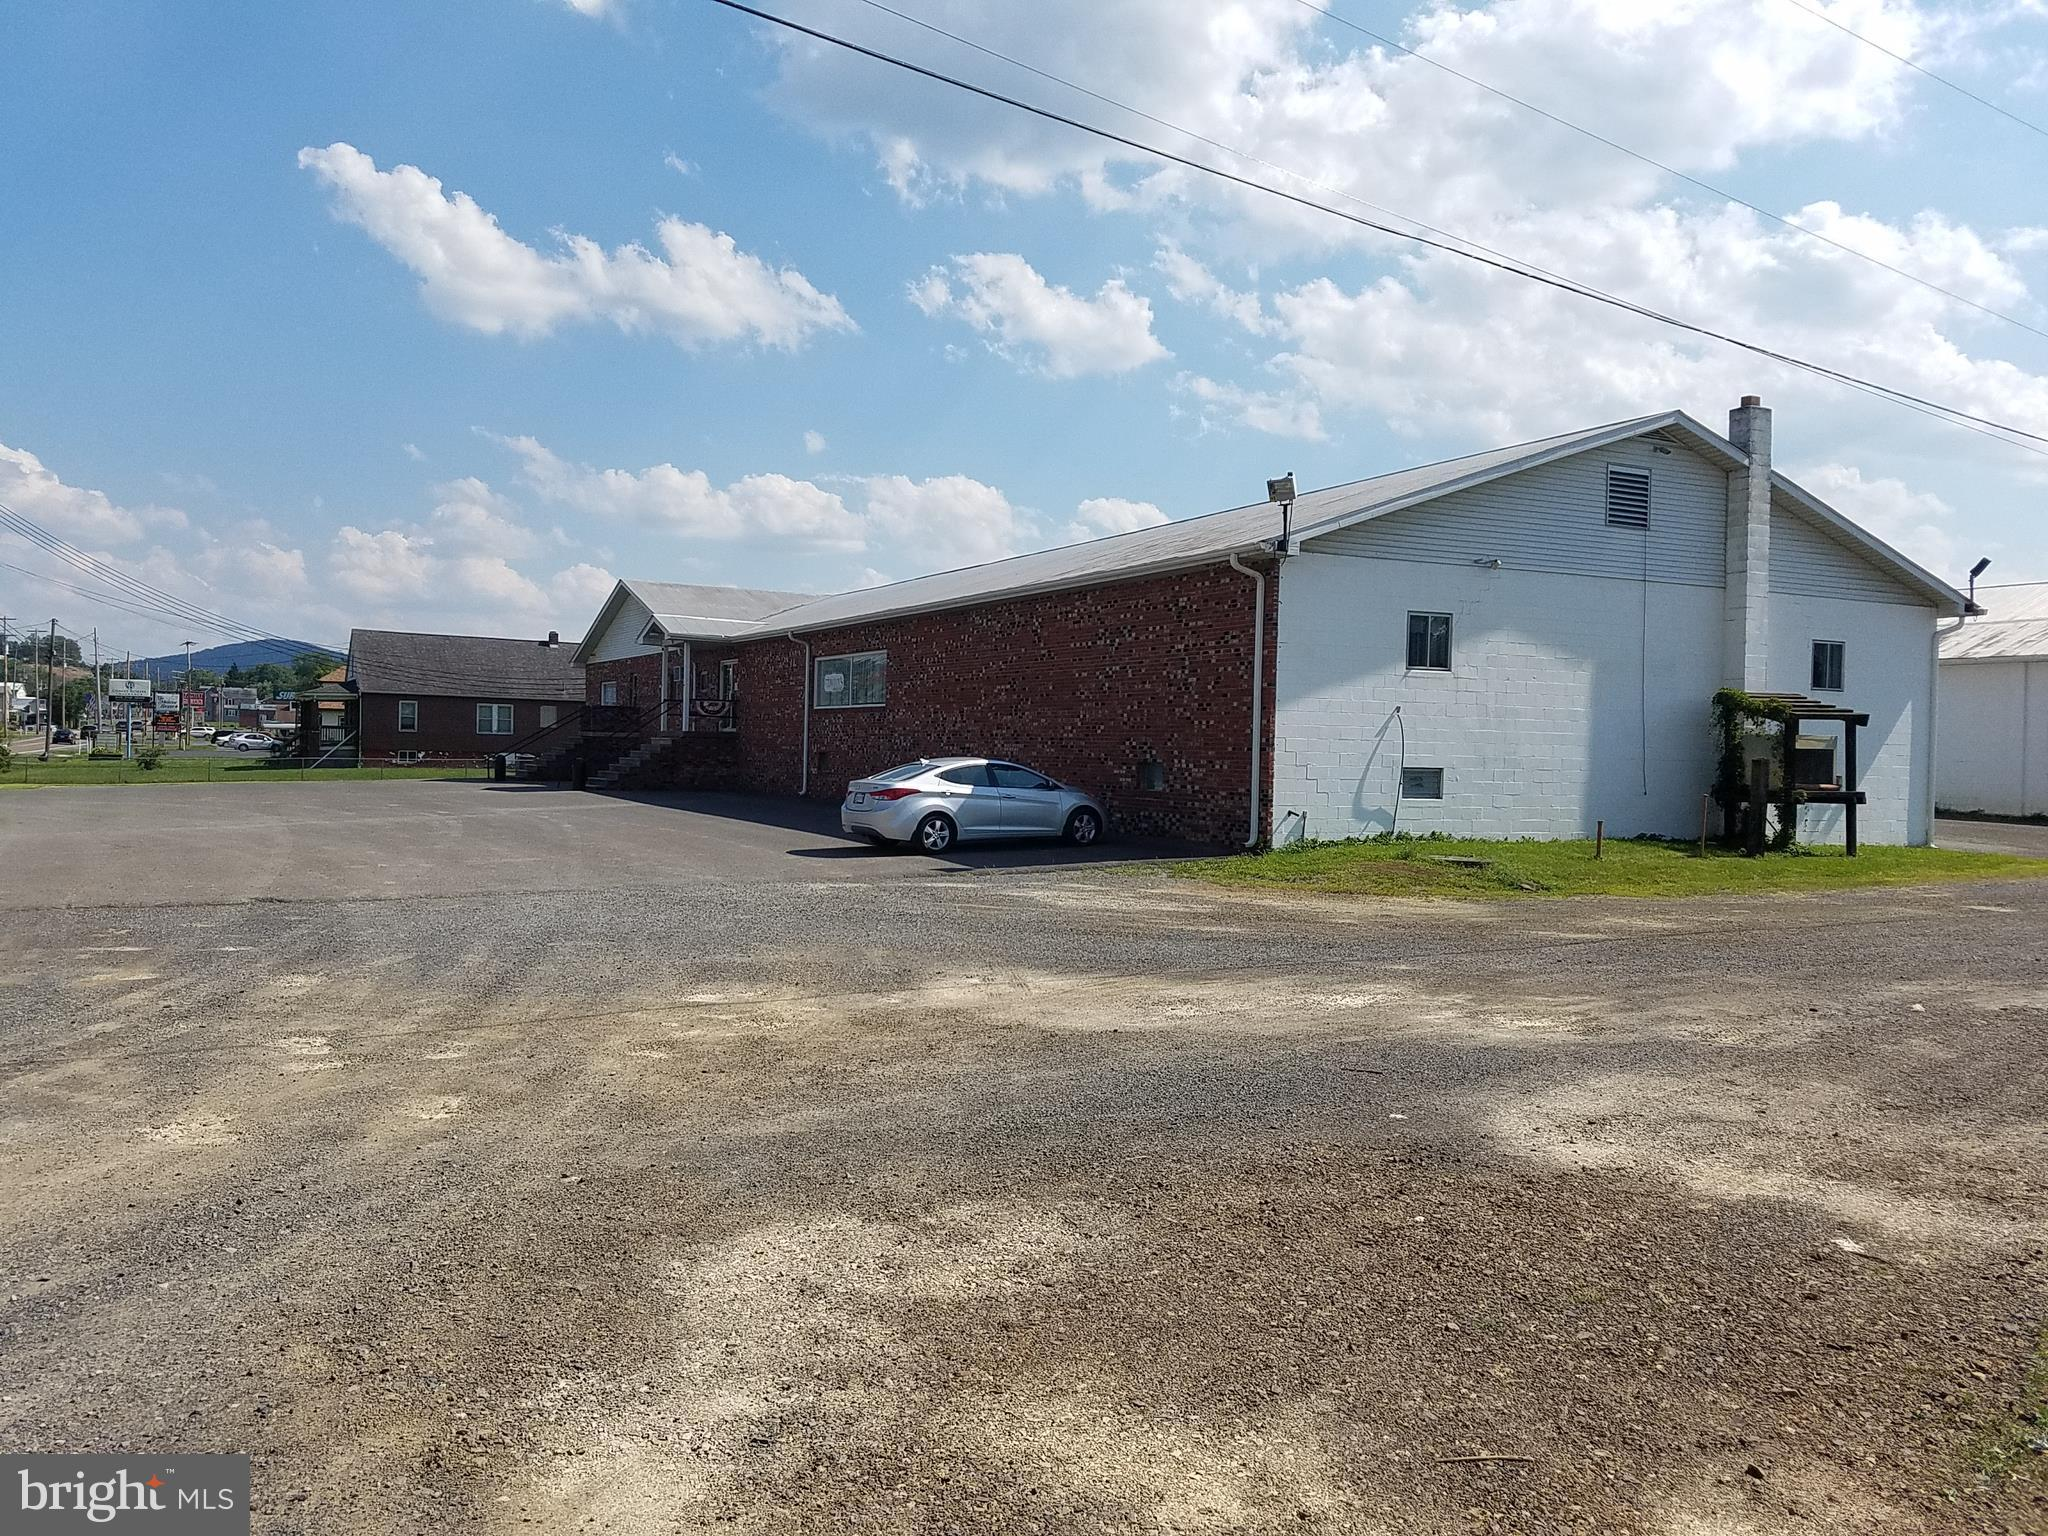 9944 FORT ASHBY ROAD, FORT ASHBY, WV 26719